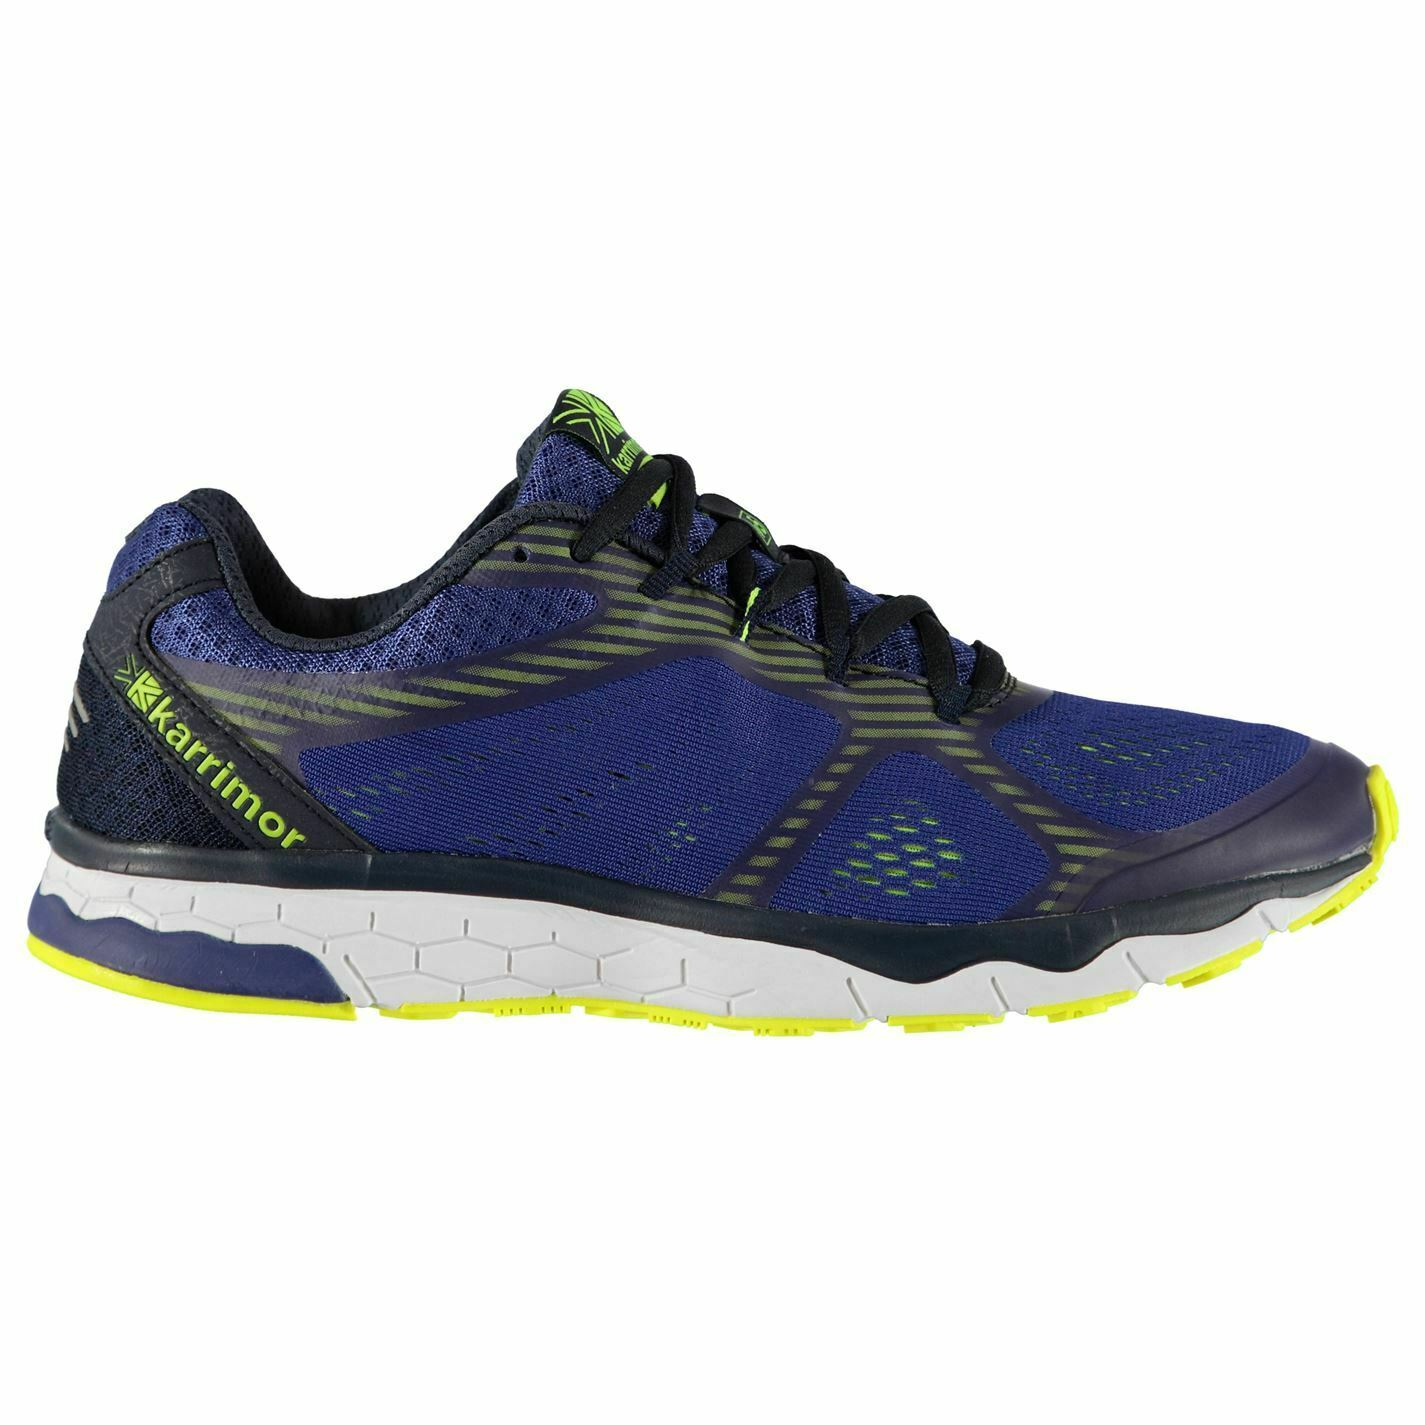 Karrimor Mens Tempo Rr Lace Up Training Sports shoes Trainers Pumps Sneakers